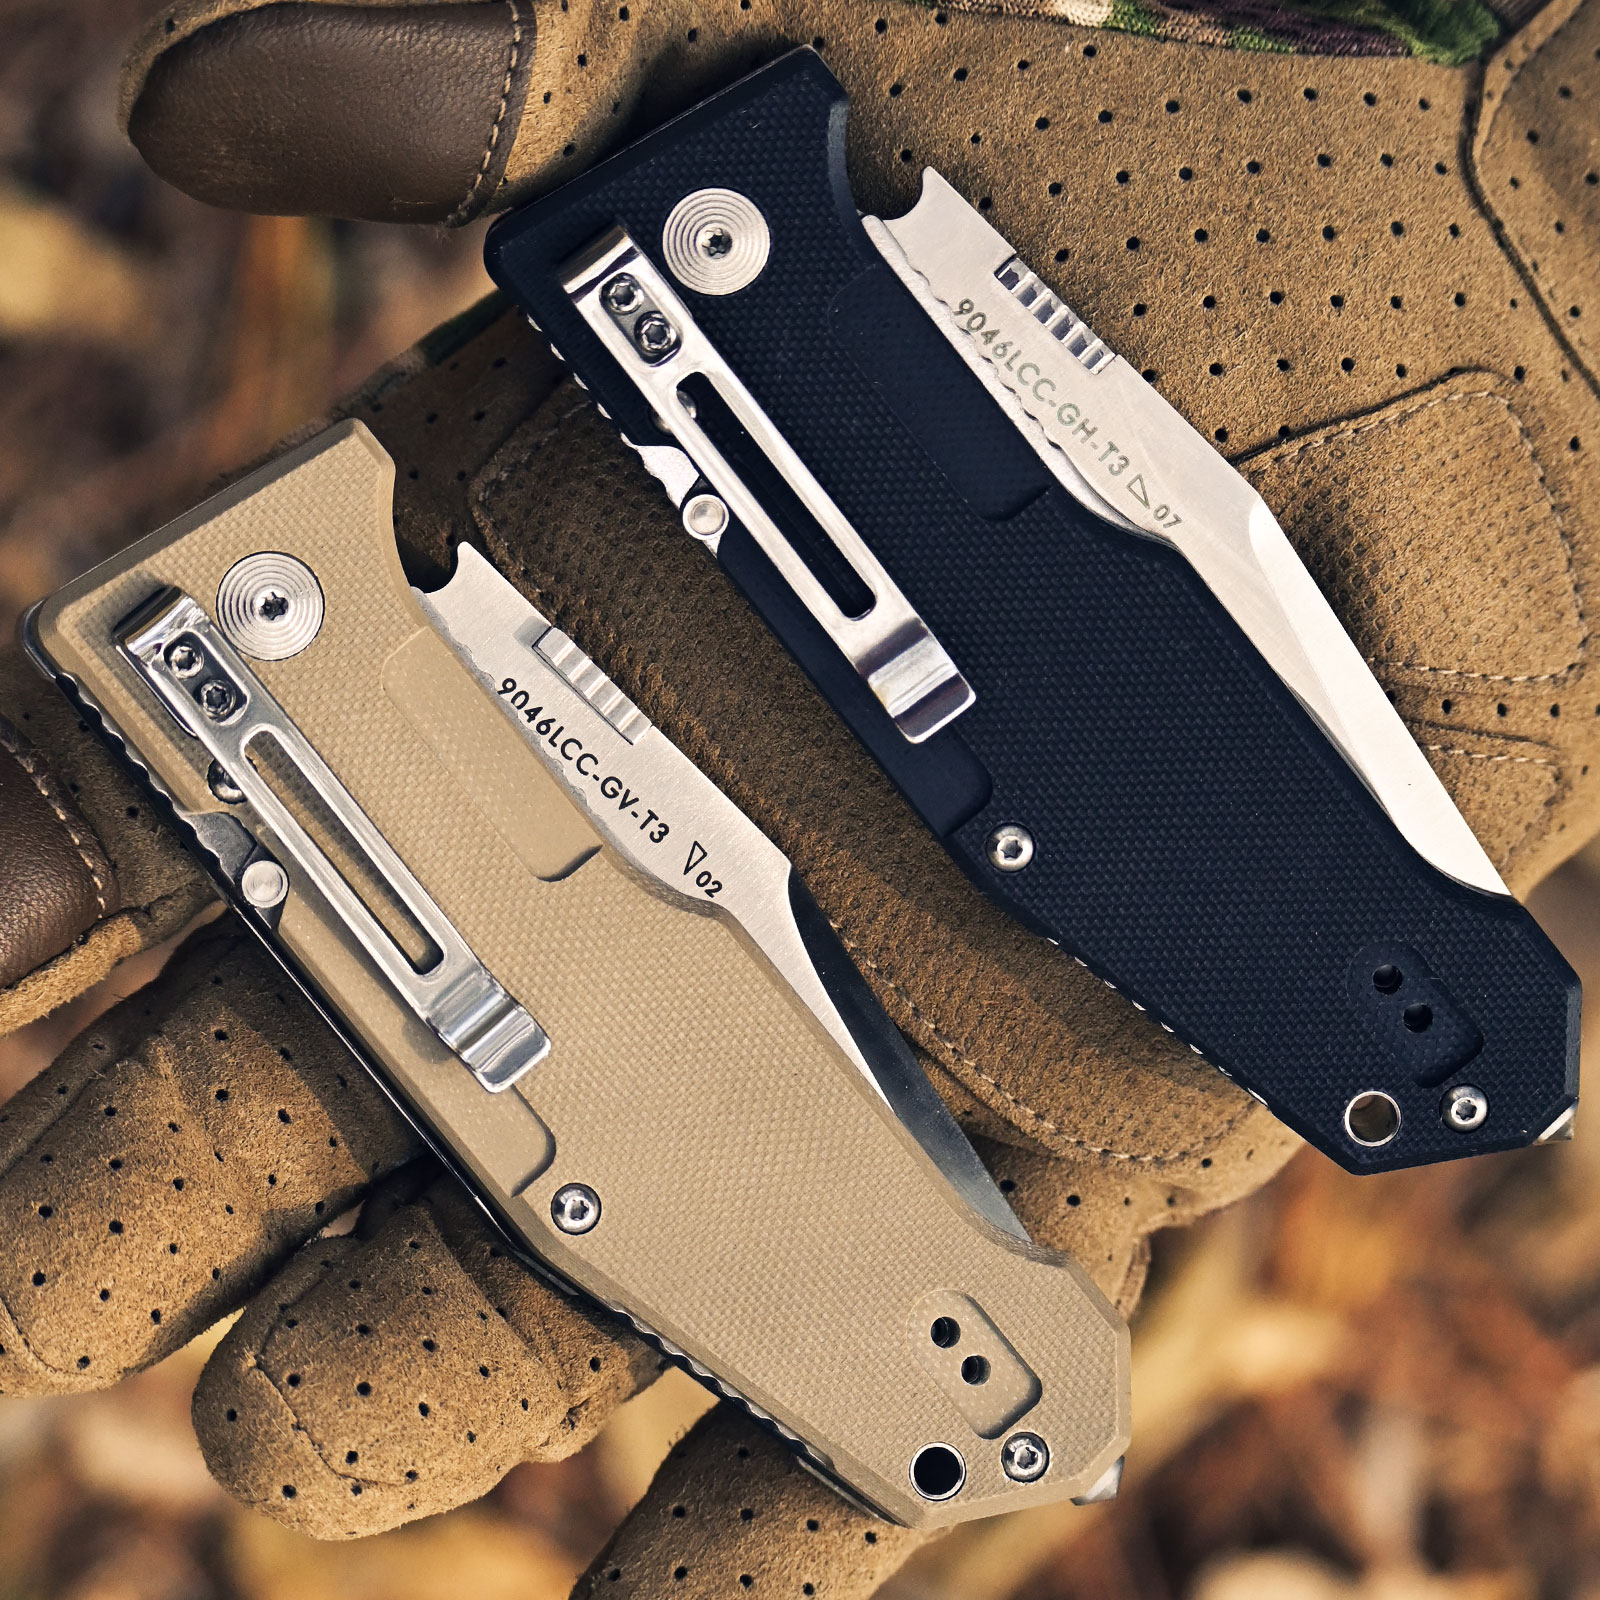 Camping Knife Folding Survival Stainless 12cr27mov Tool Folding Multi 9046 Outdoor Functional Steel LAND Knife Hunting Saw